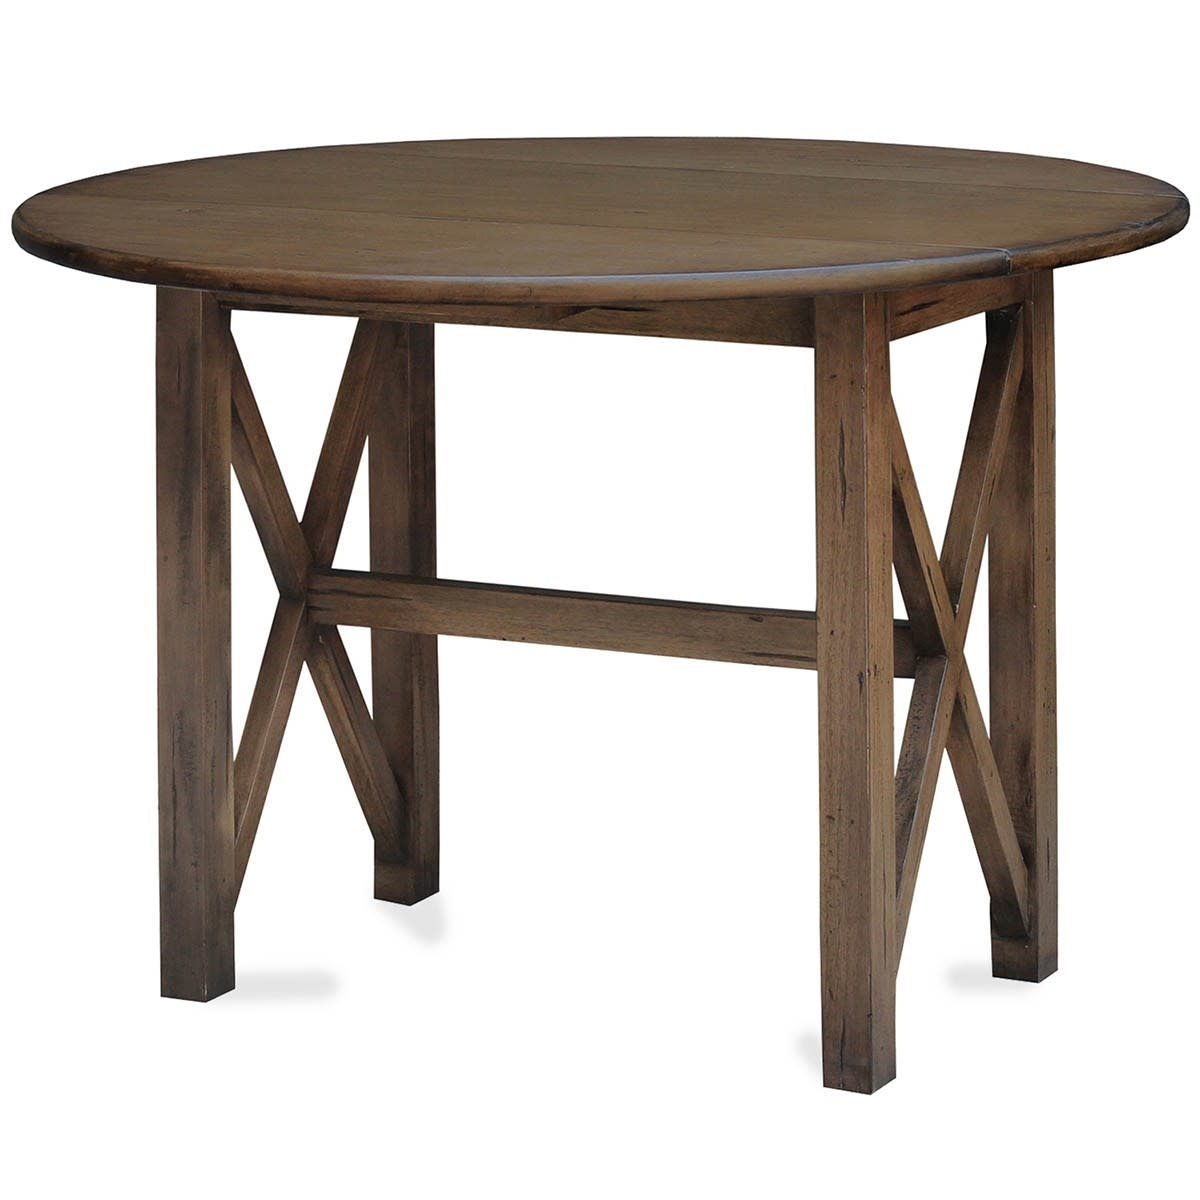 Fabulous Drop Leaf Table Aries Collection